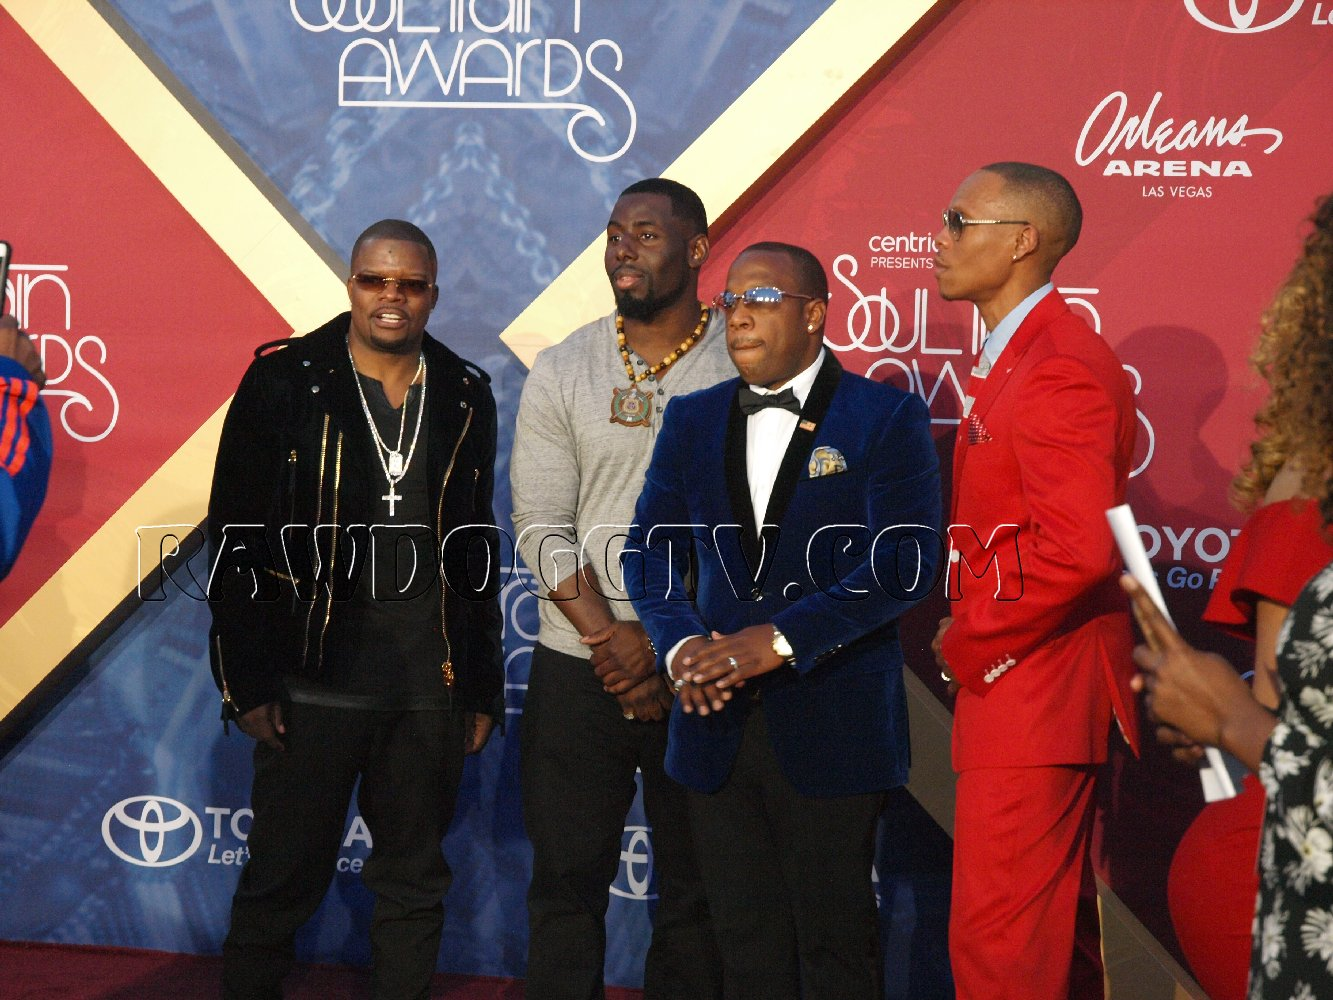 soul-train-music-awards-2016-photos-air-date-nov-27th-bet-centric-pr-mobilewire-305-490-2182-9